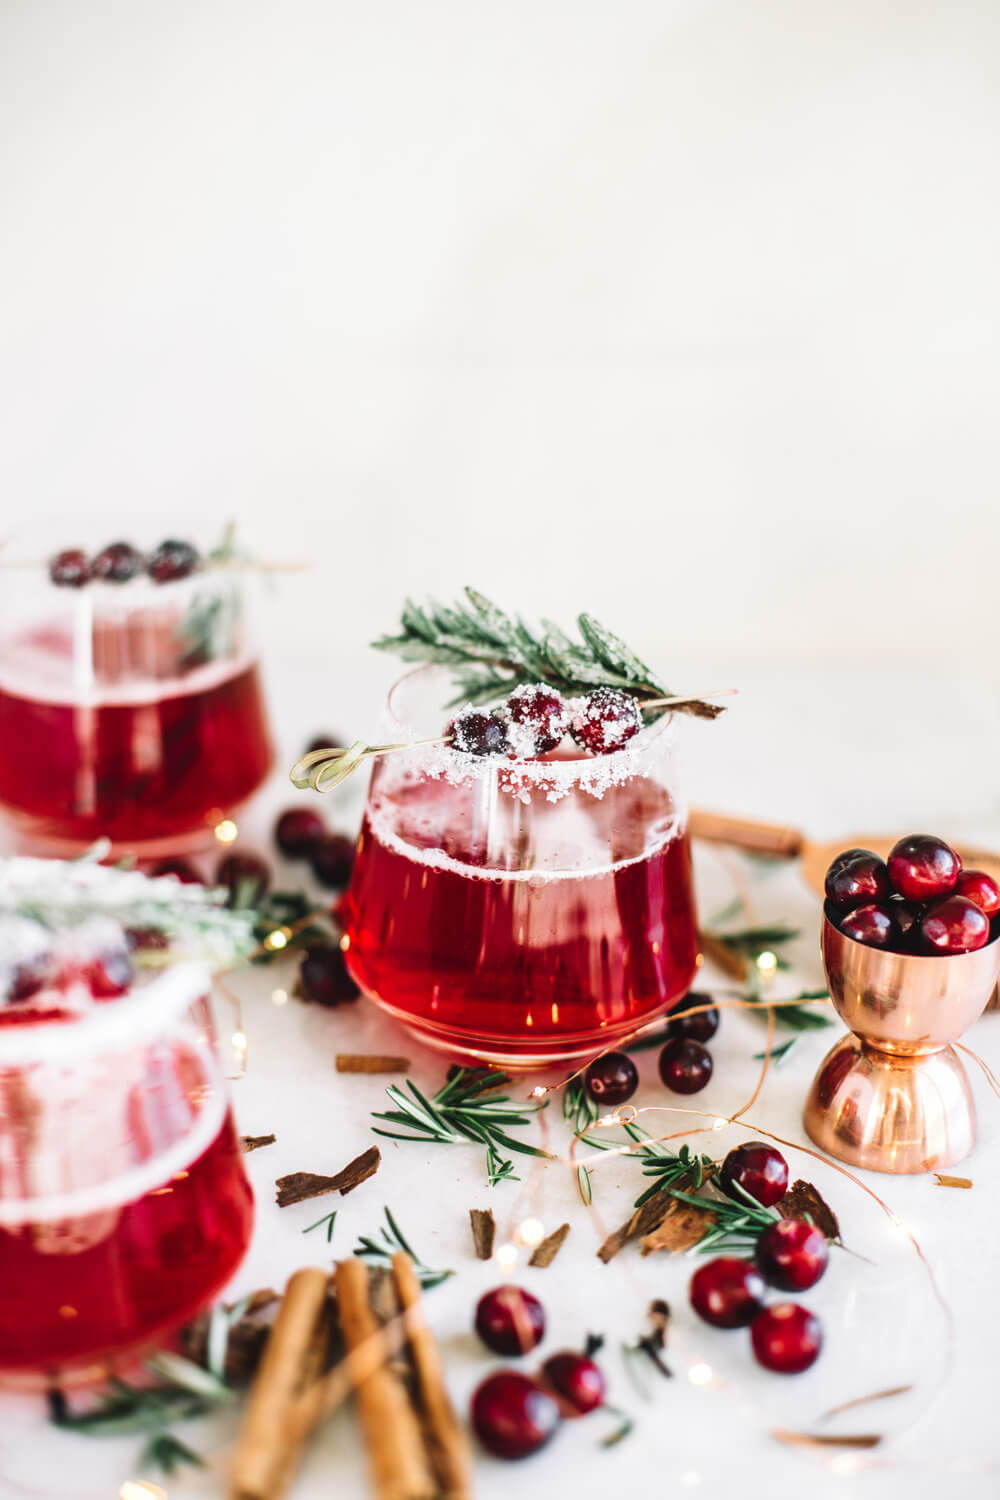 MRS. CLAUS CRANBERRY COCKTAIL